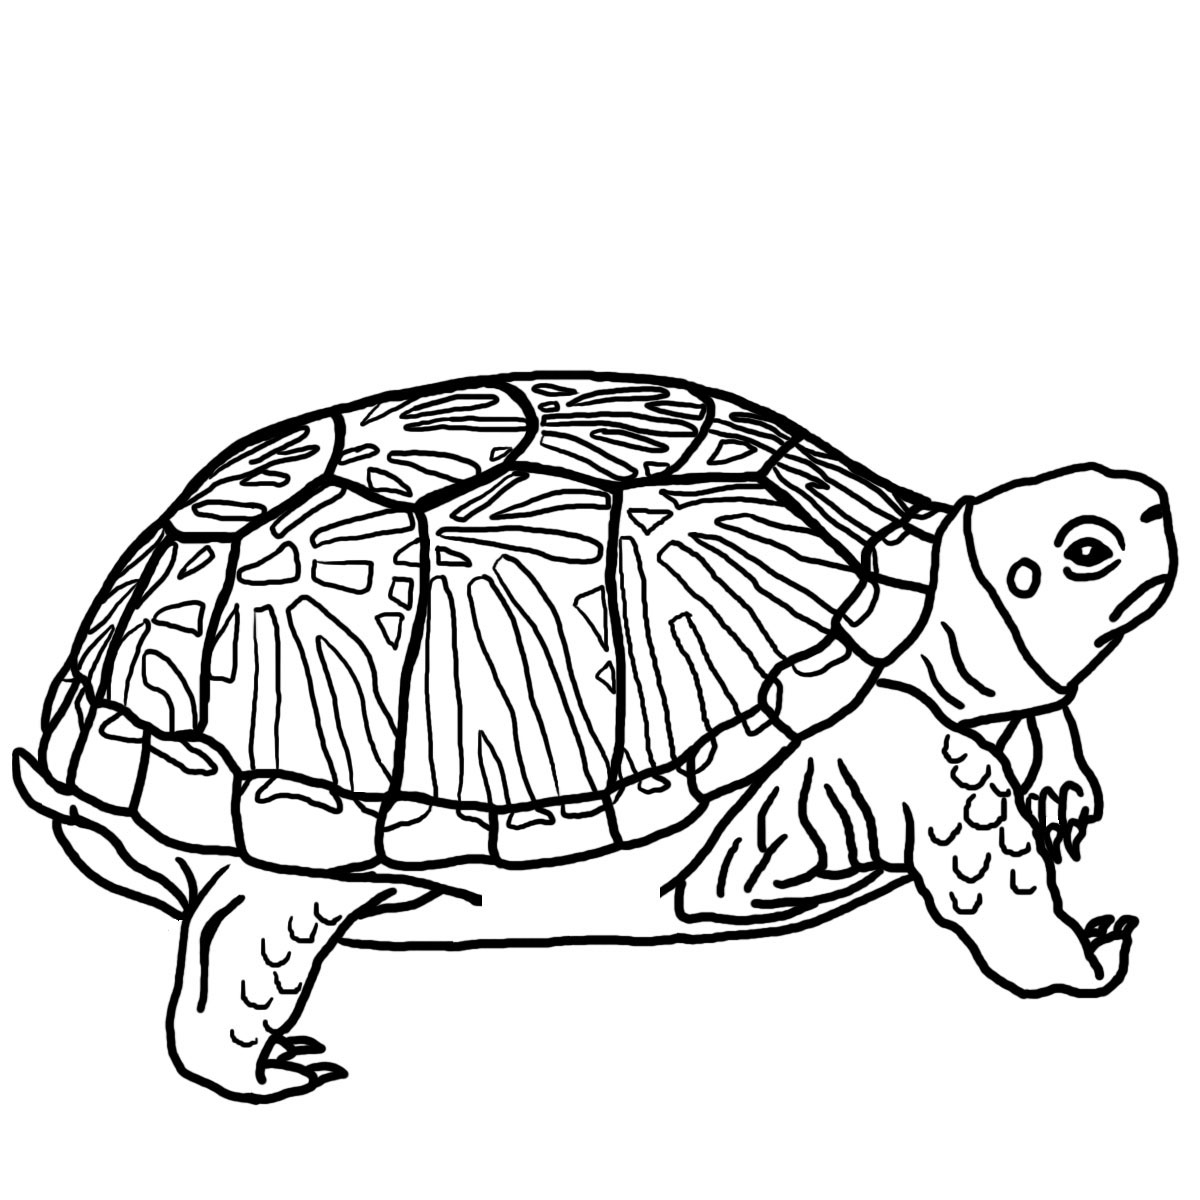 turtle printable coloring pages coloring pages turtles free printable coloring pages printable pages turtle coloring 1 1